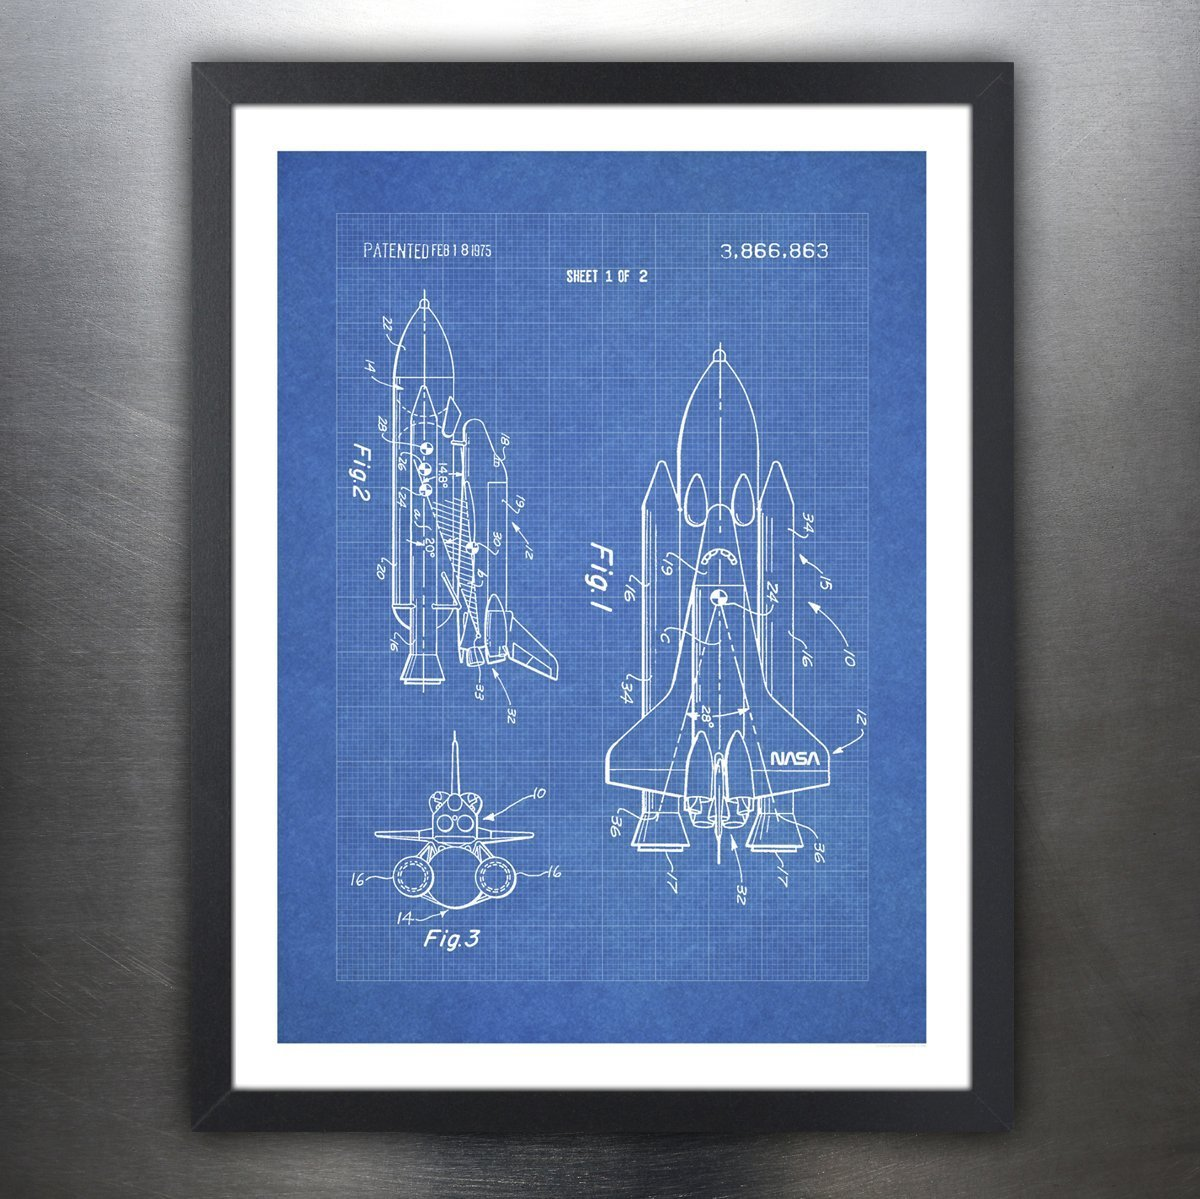 Amazon.com: Steves Poster Store SPACE SHUTTLE 1975 PATENT ART 18x24 ...